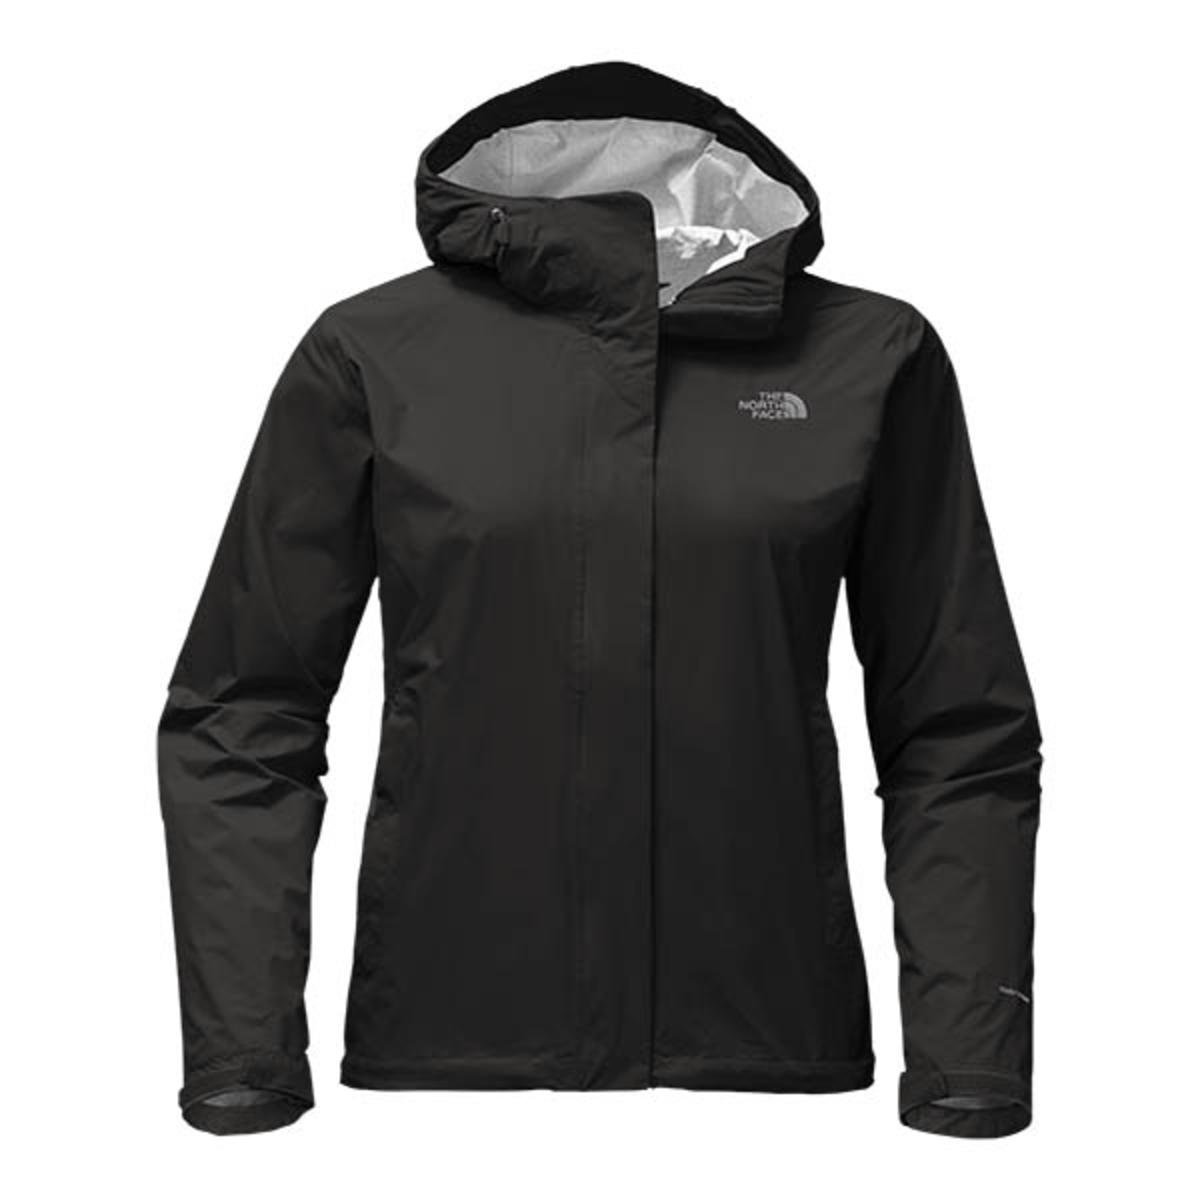 0ee5f7d97 The North Face Women's Venture 2 Jacket - Black - The Warming Store